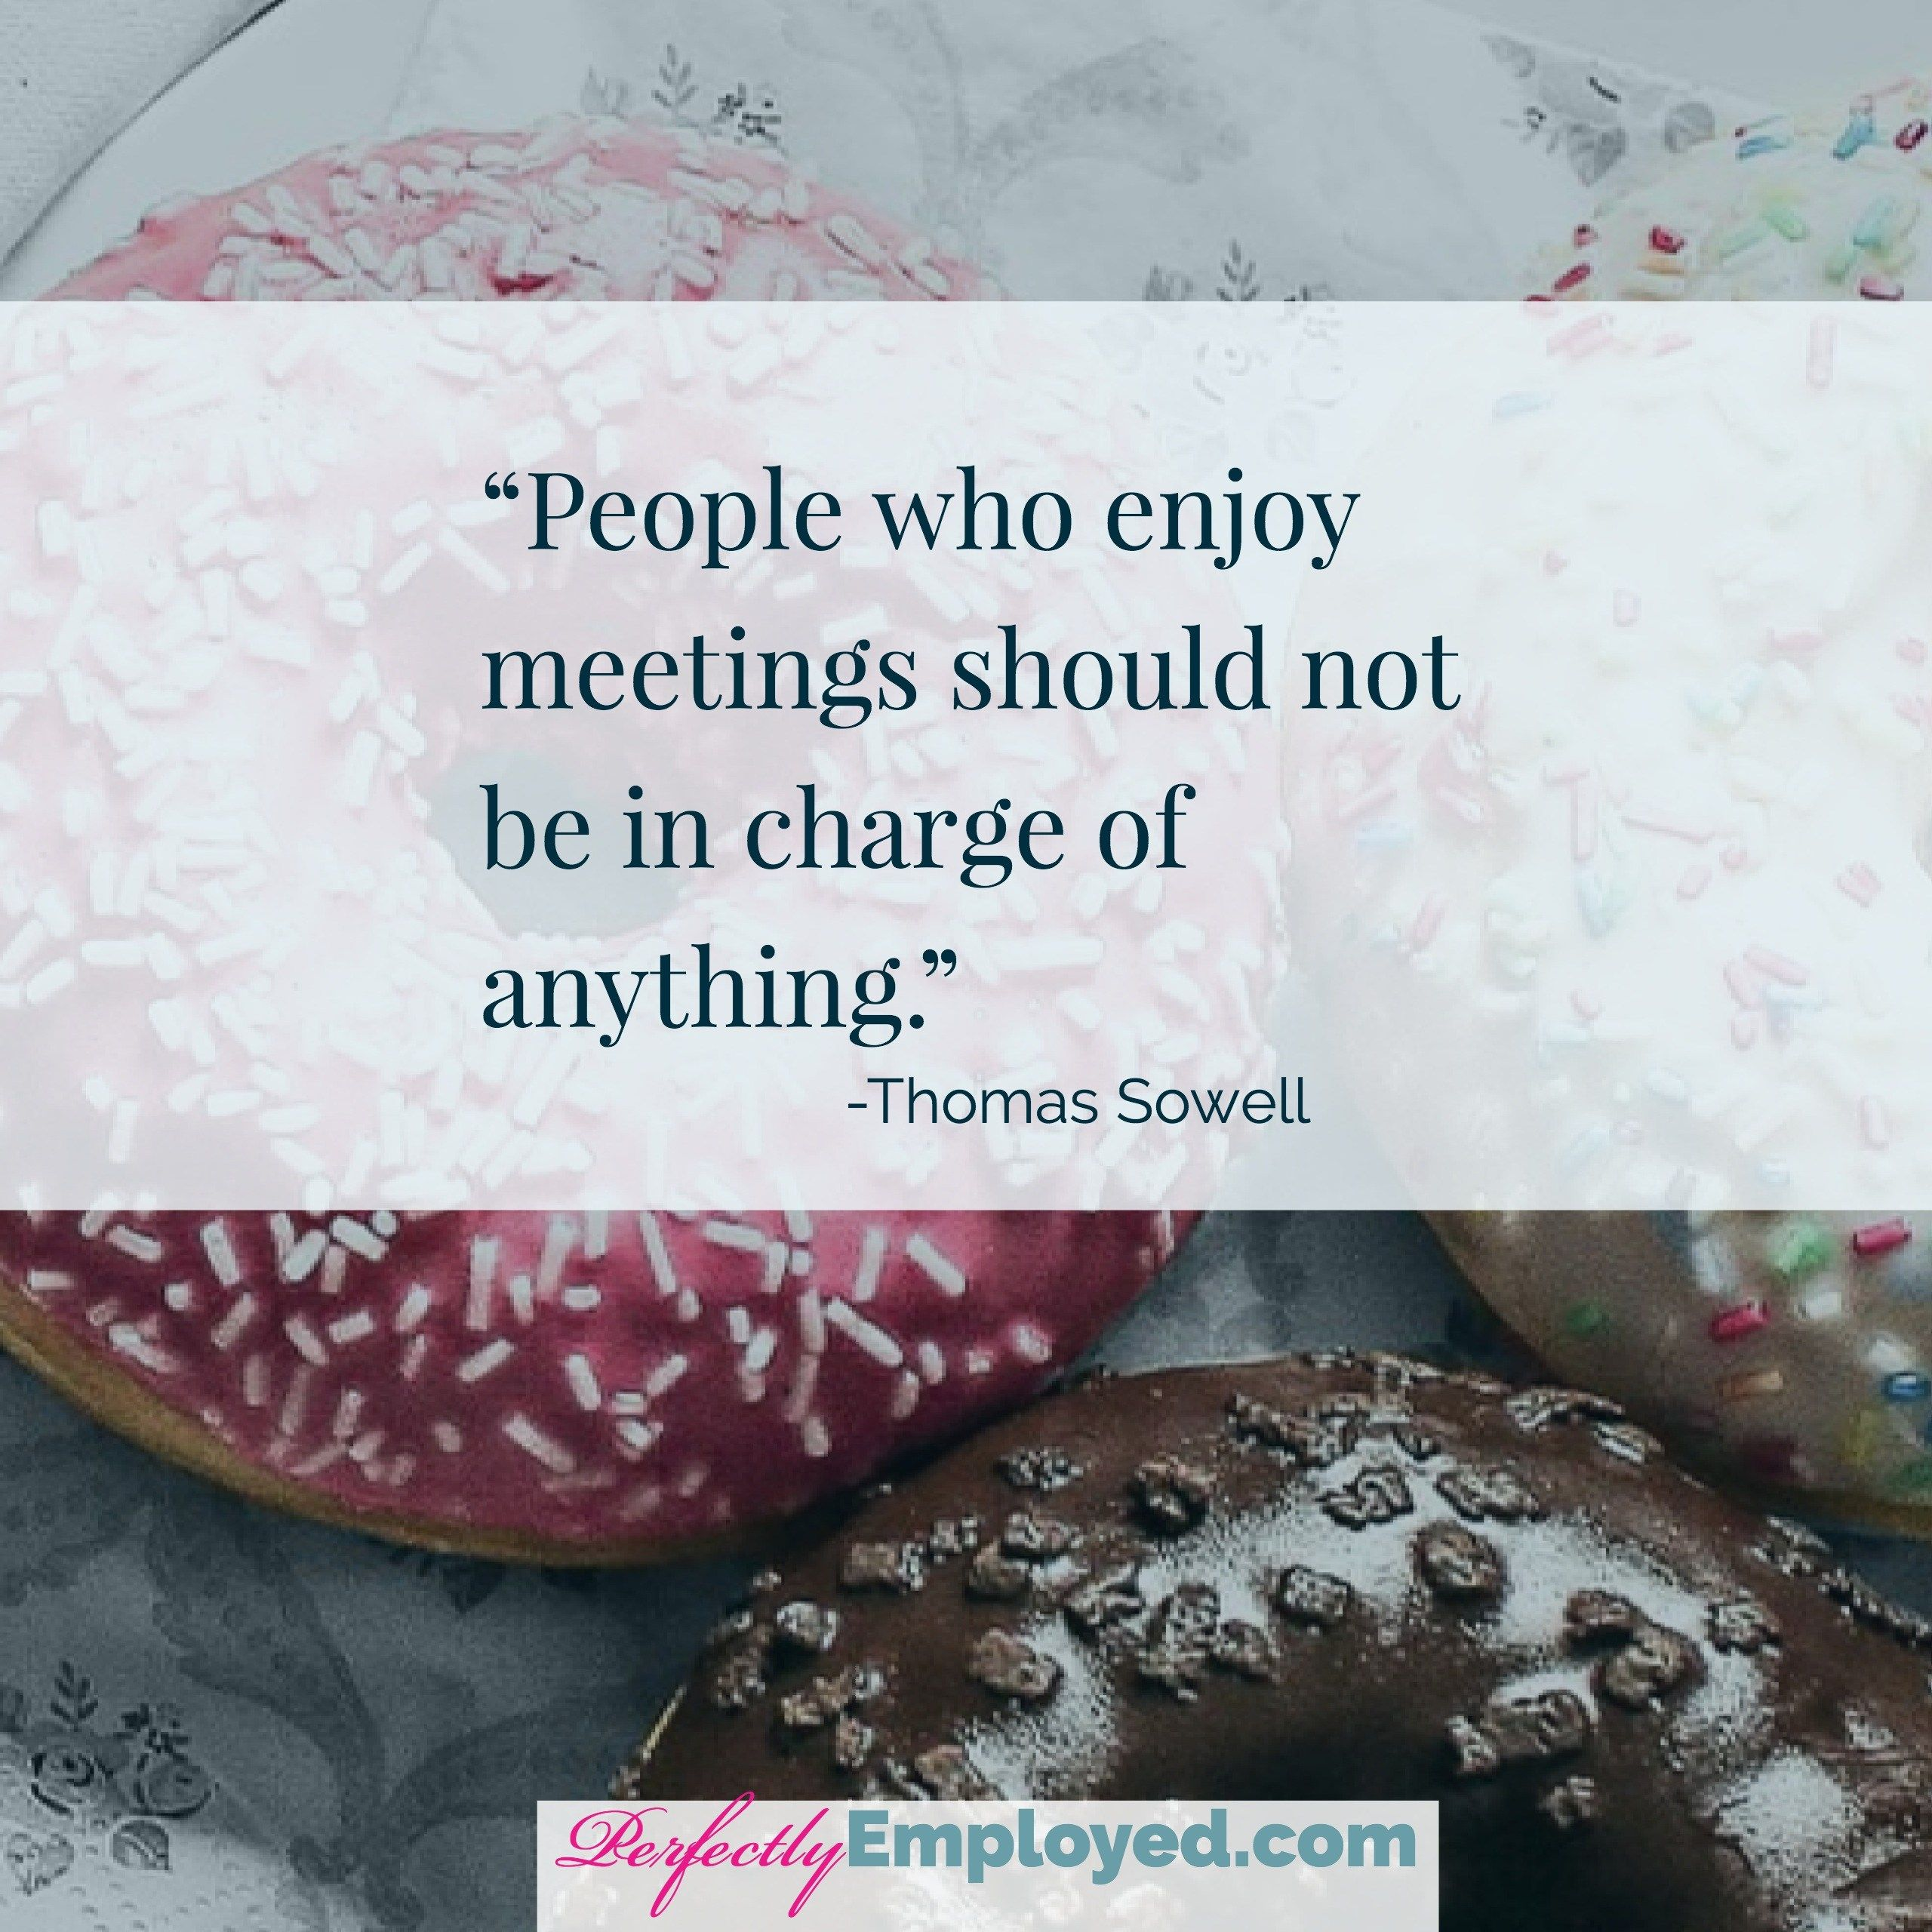 11 Funny Quotes About Meetings To Read While Waiting On Your Next Meeting To Start Perfectly Employed Funny Quotes Office Quotes Meet